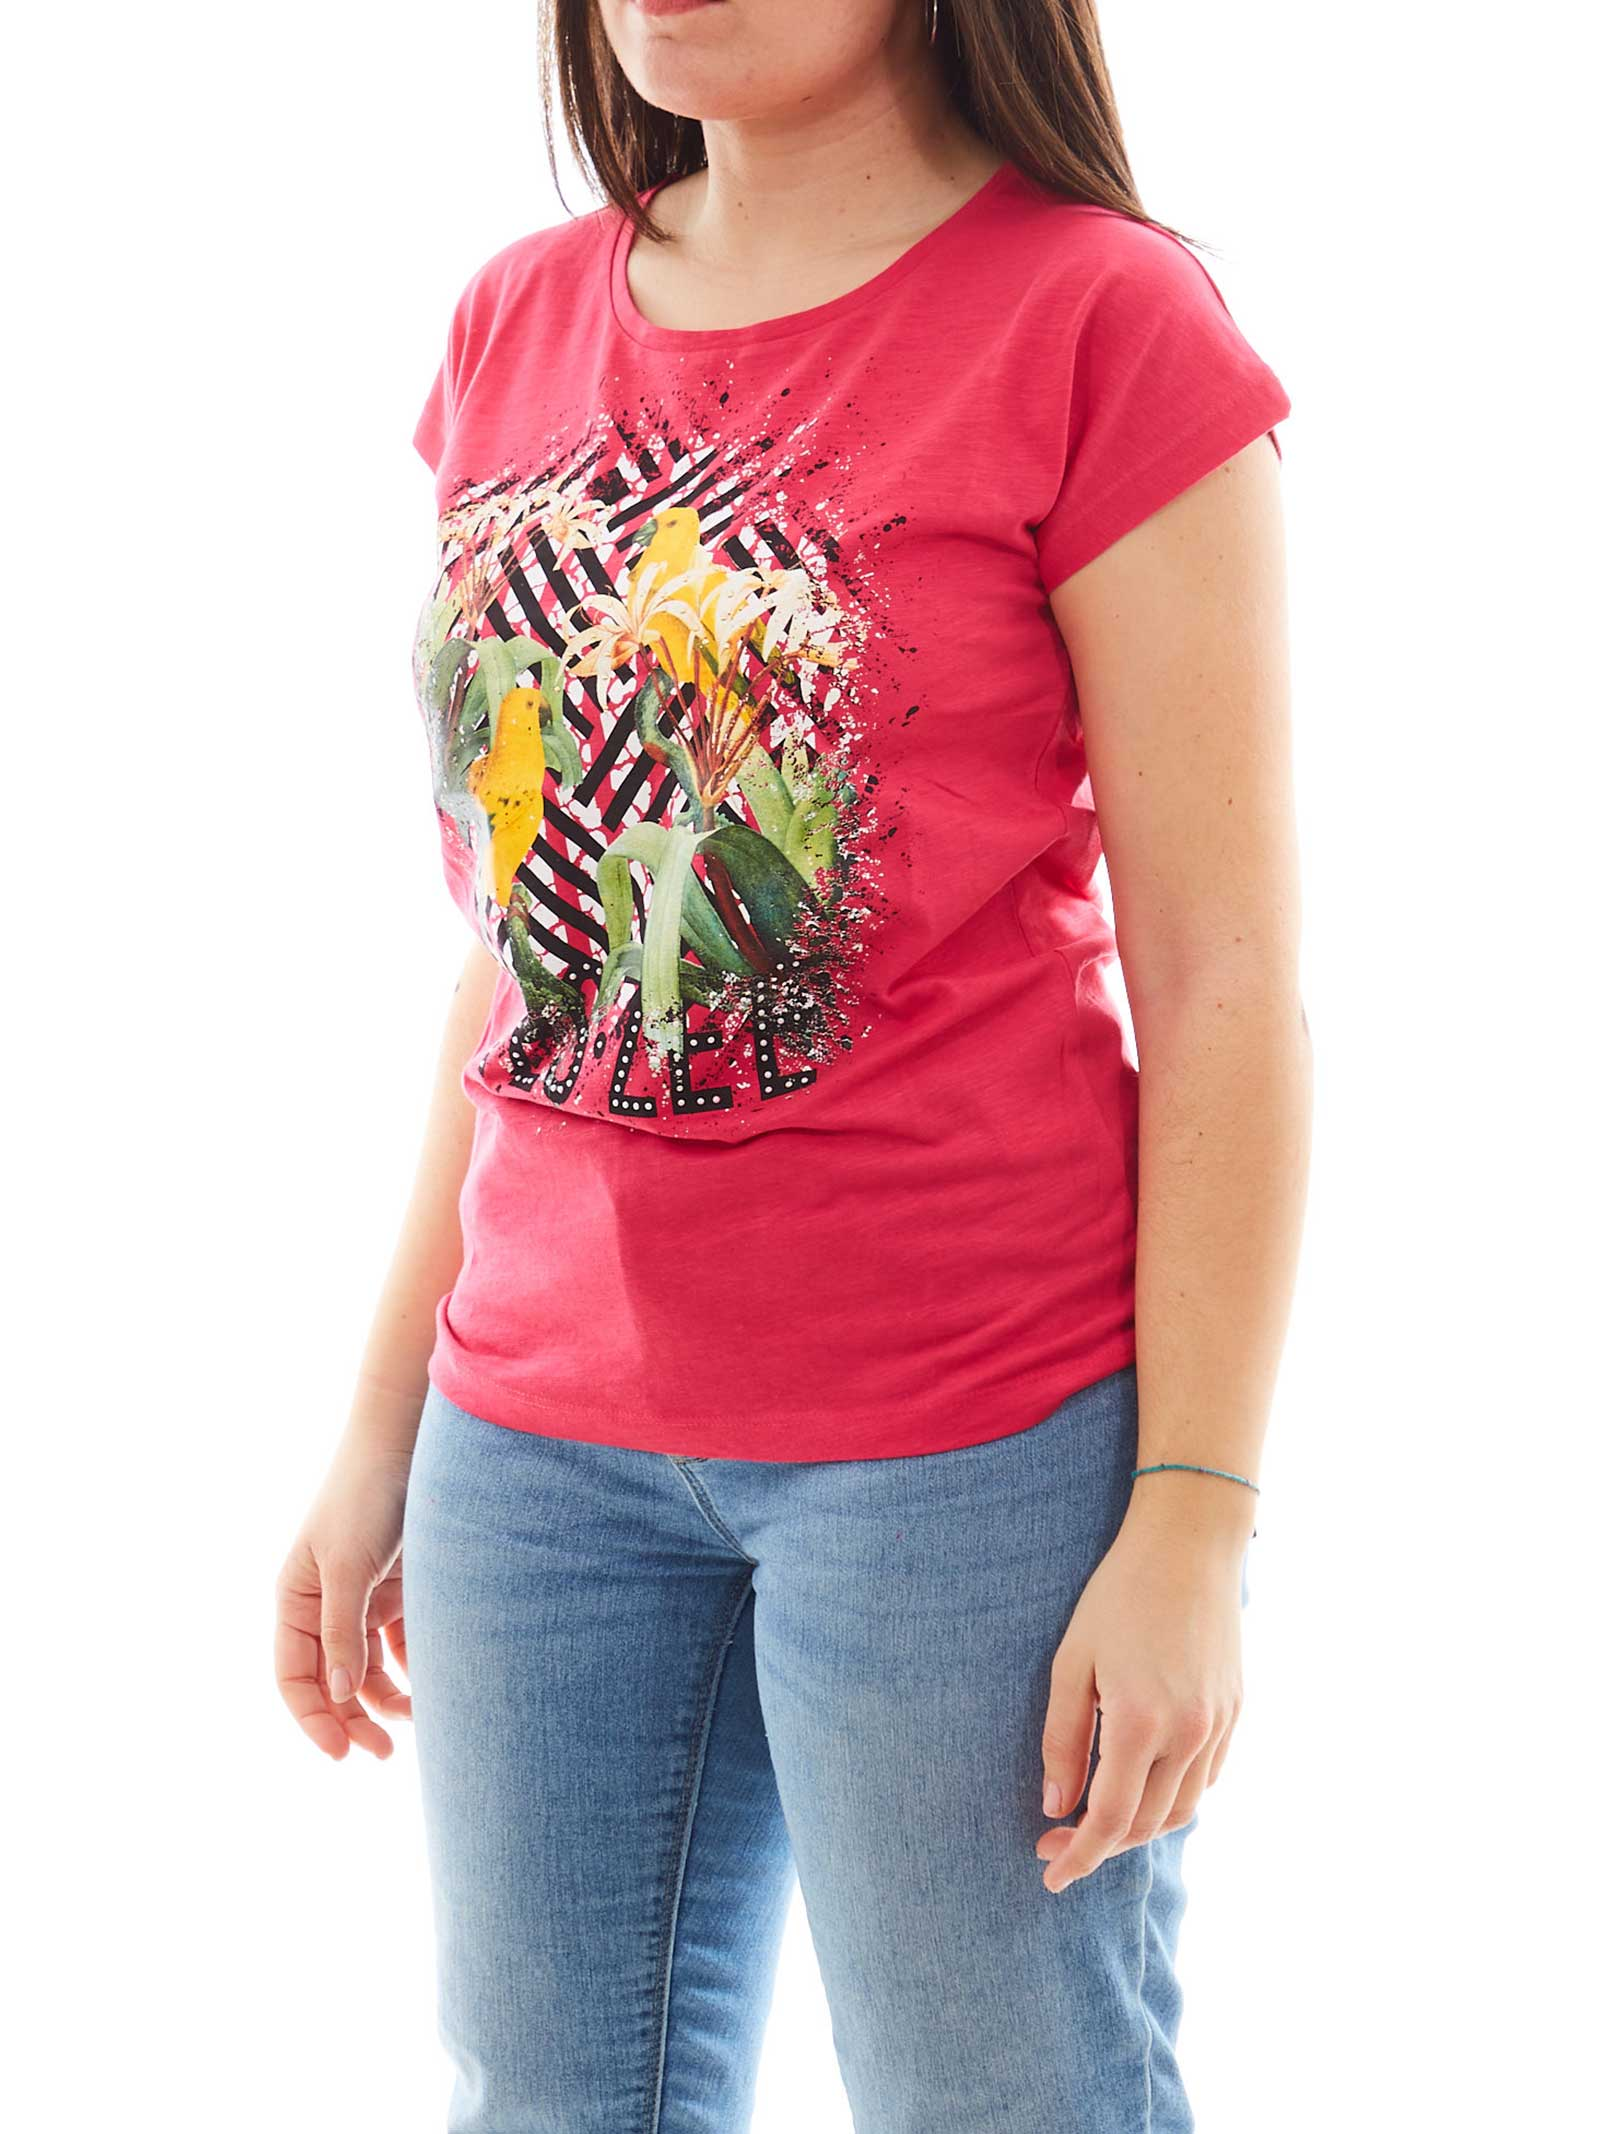 T-SHIRT DONNA YES ZEE   T-shirt   T212-TL020424